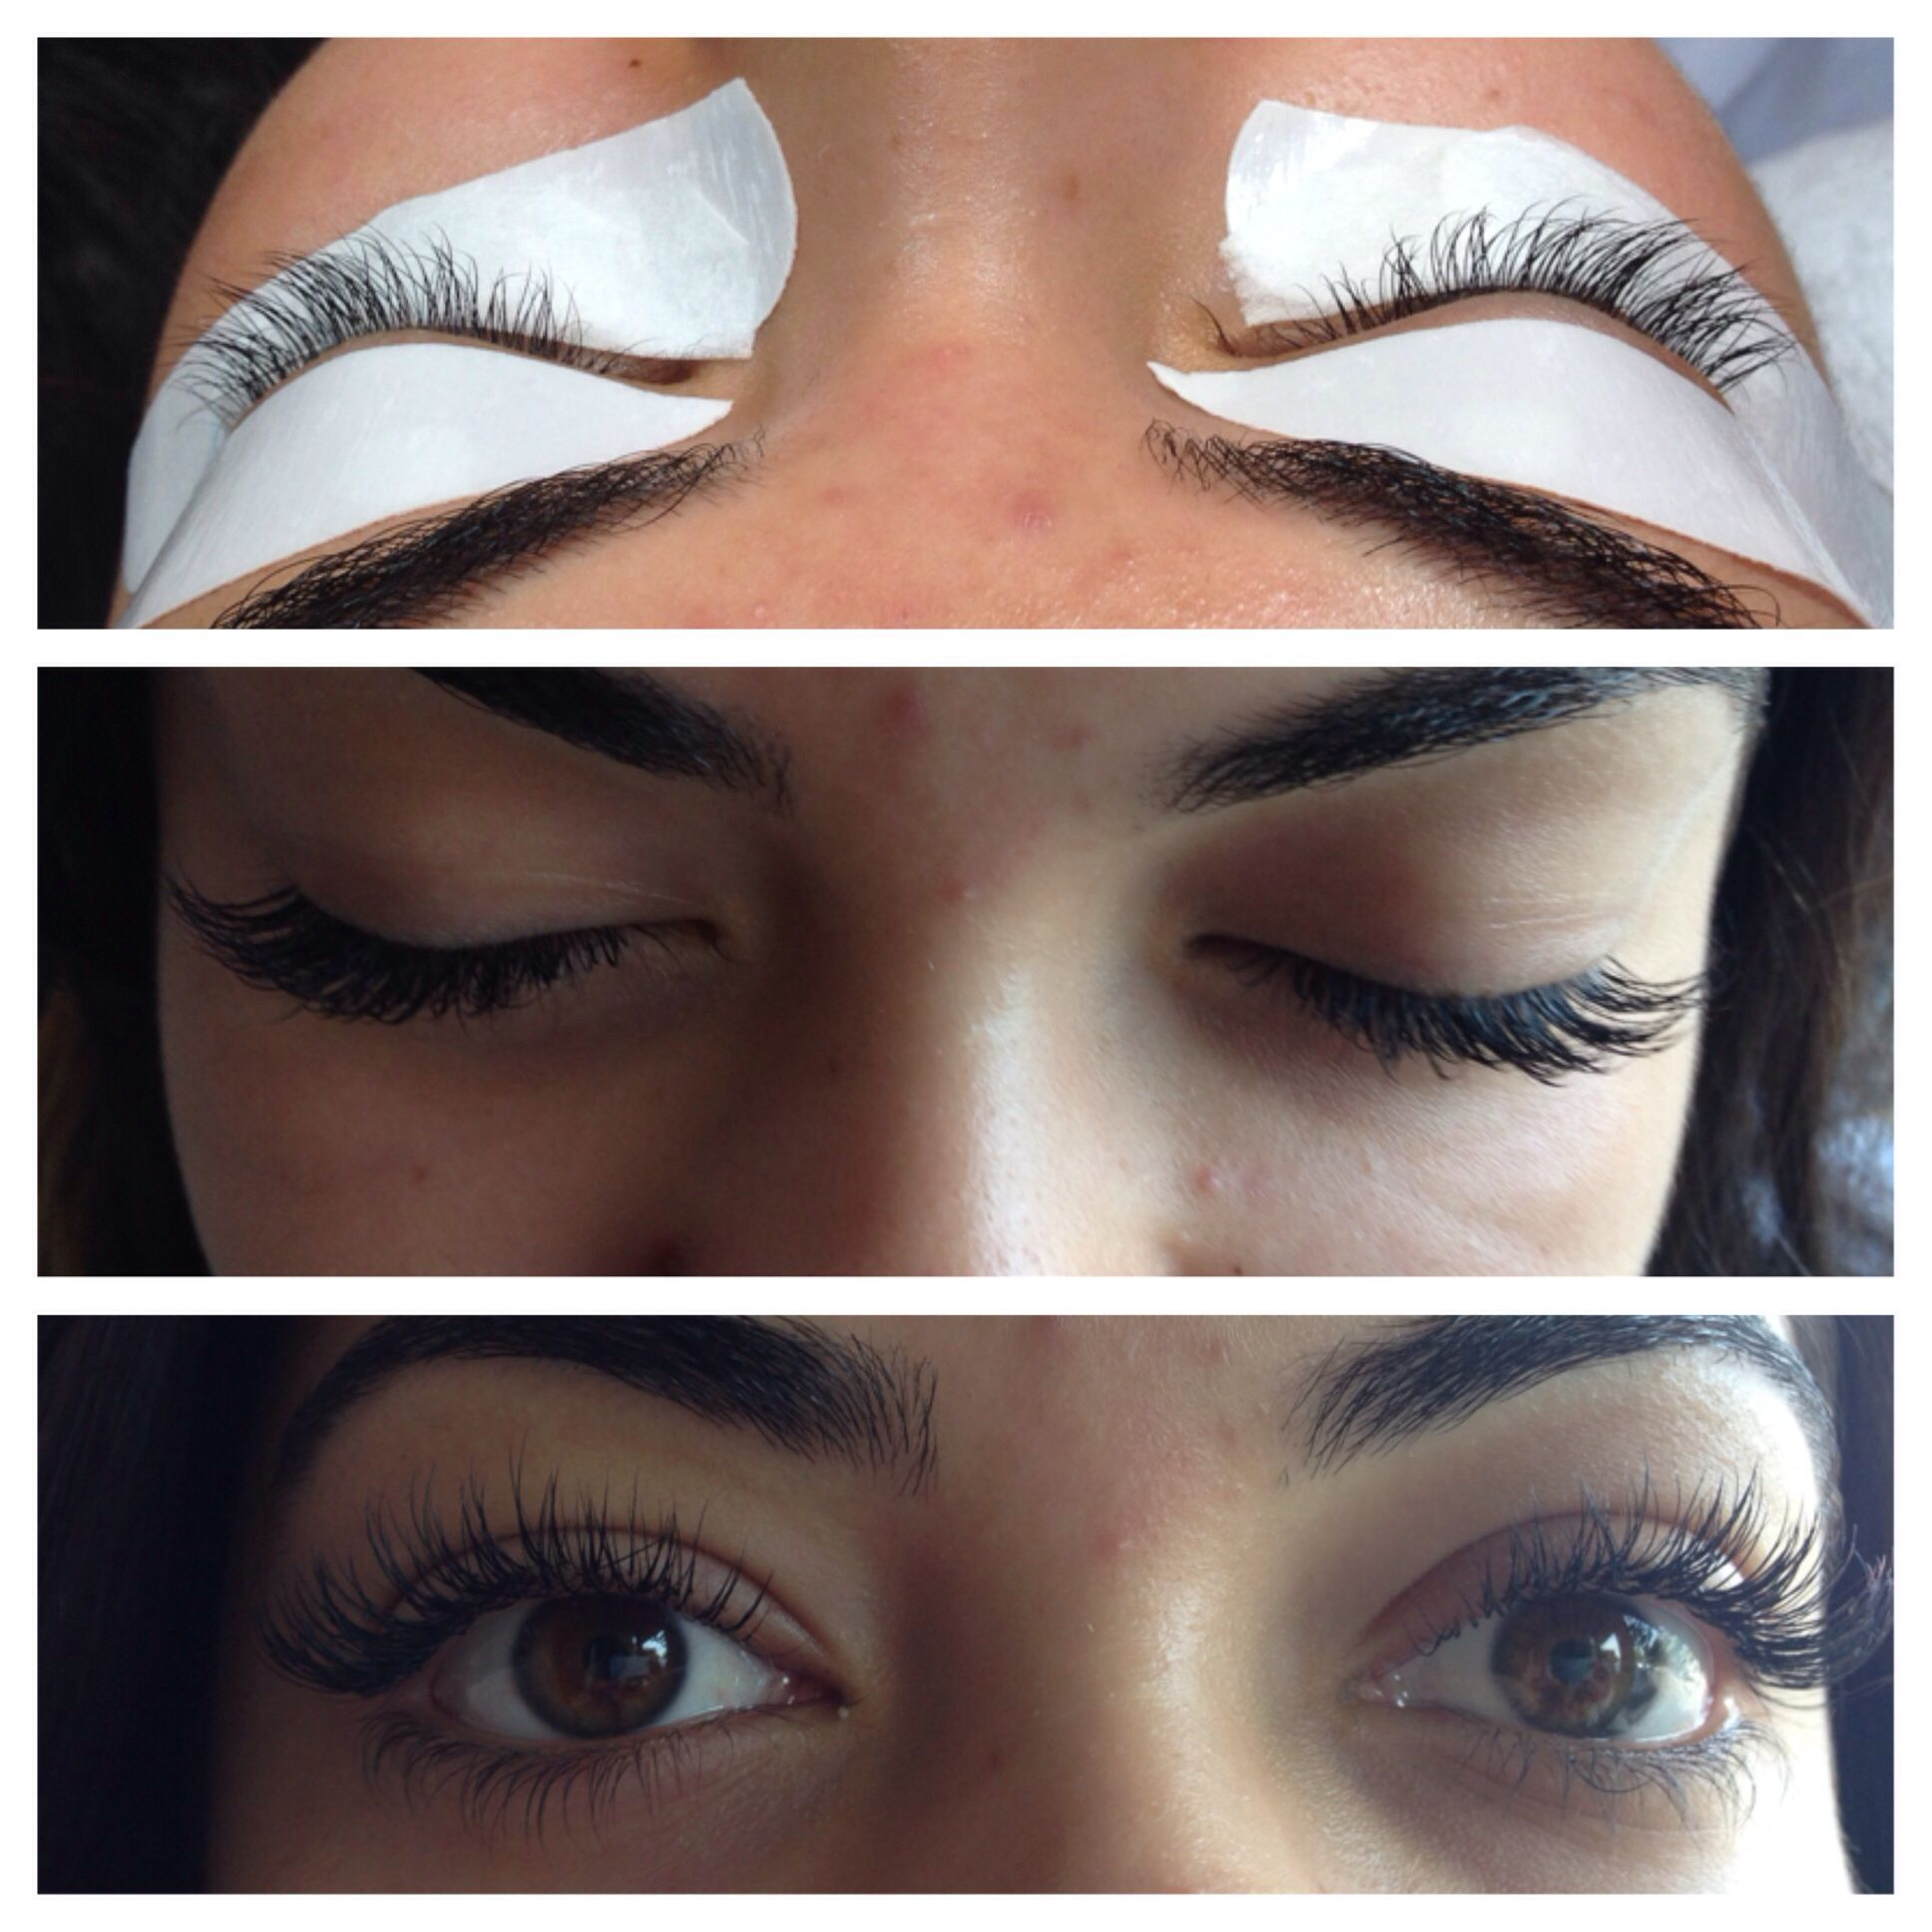 how to take care of eyelash extensions when sleeping